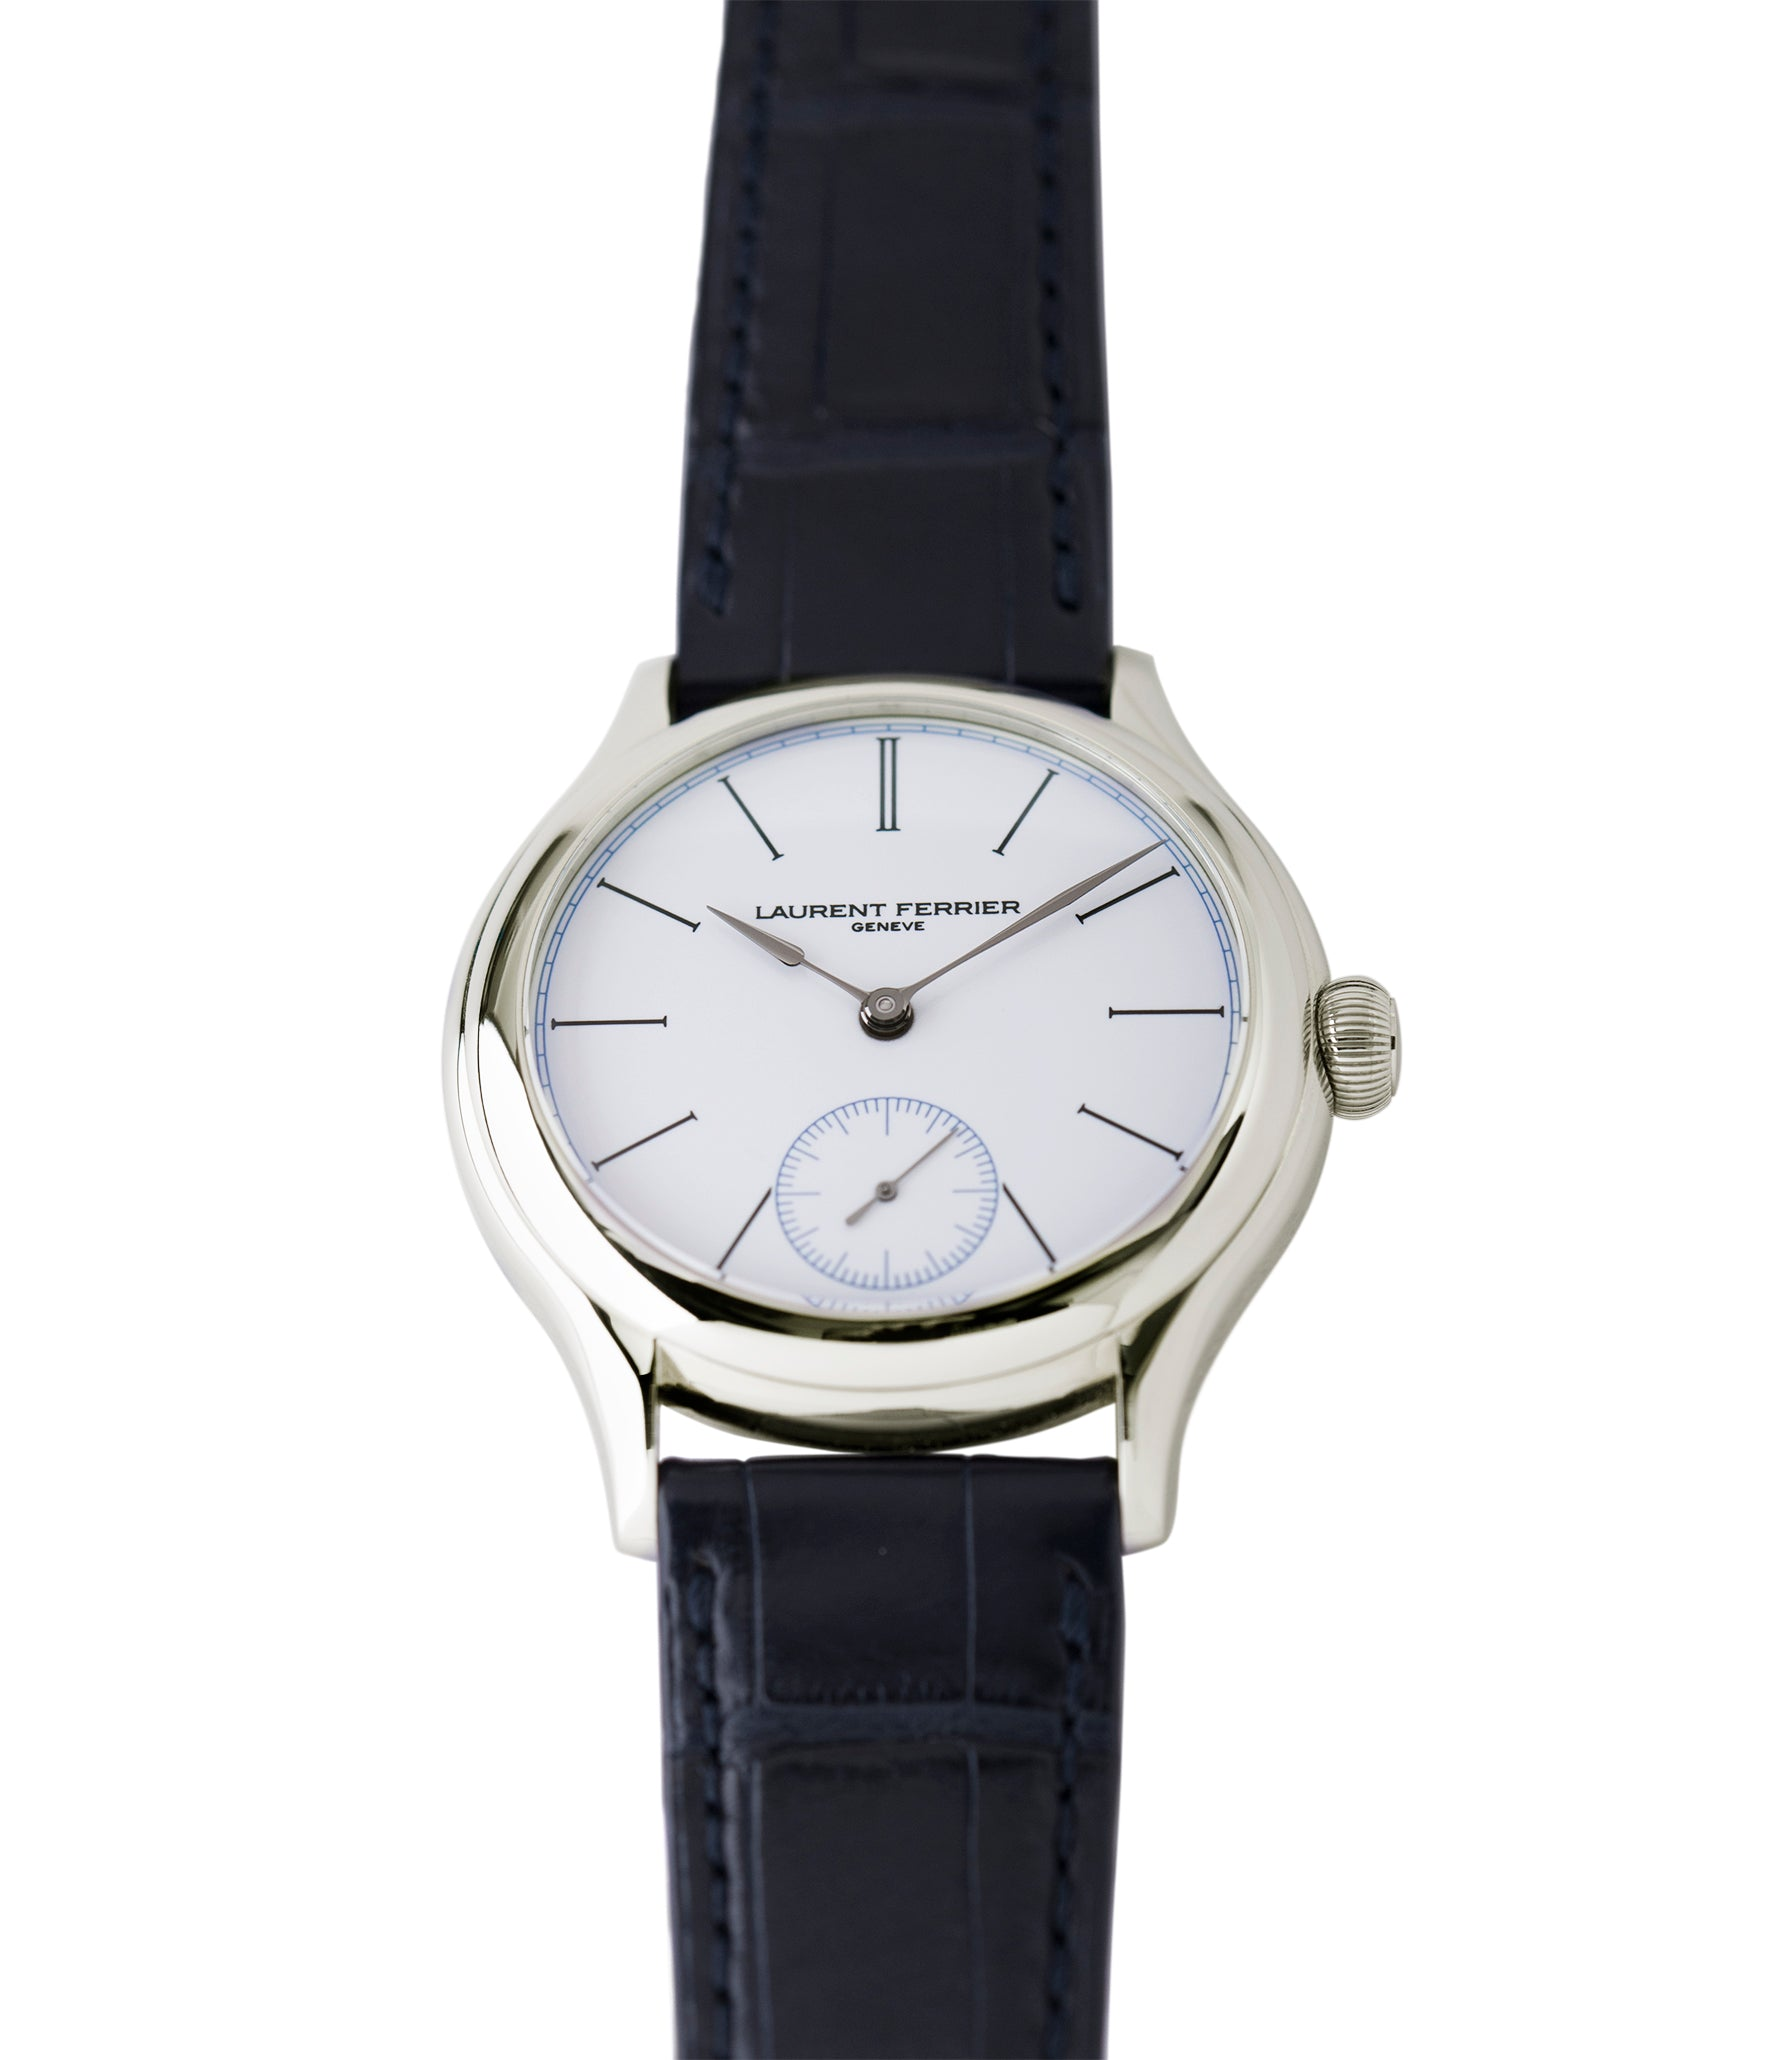 steel Laurent Ferrier Galet Micro-Rotor FBN 230.02 Enamel dial steel watch for sale online at A Collected Man London UK approved seller of independent watchmaker Laurent Ferrier